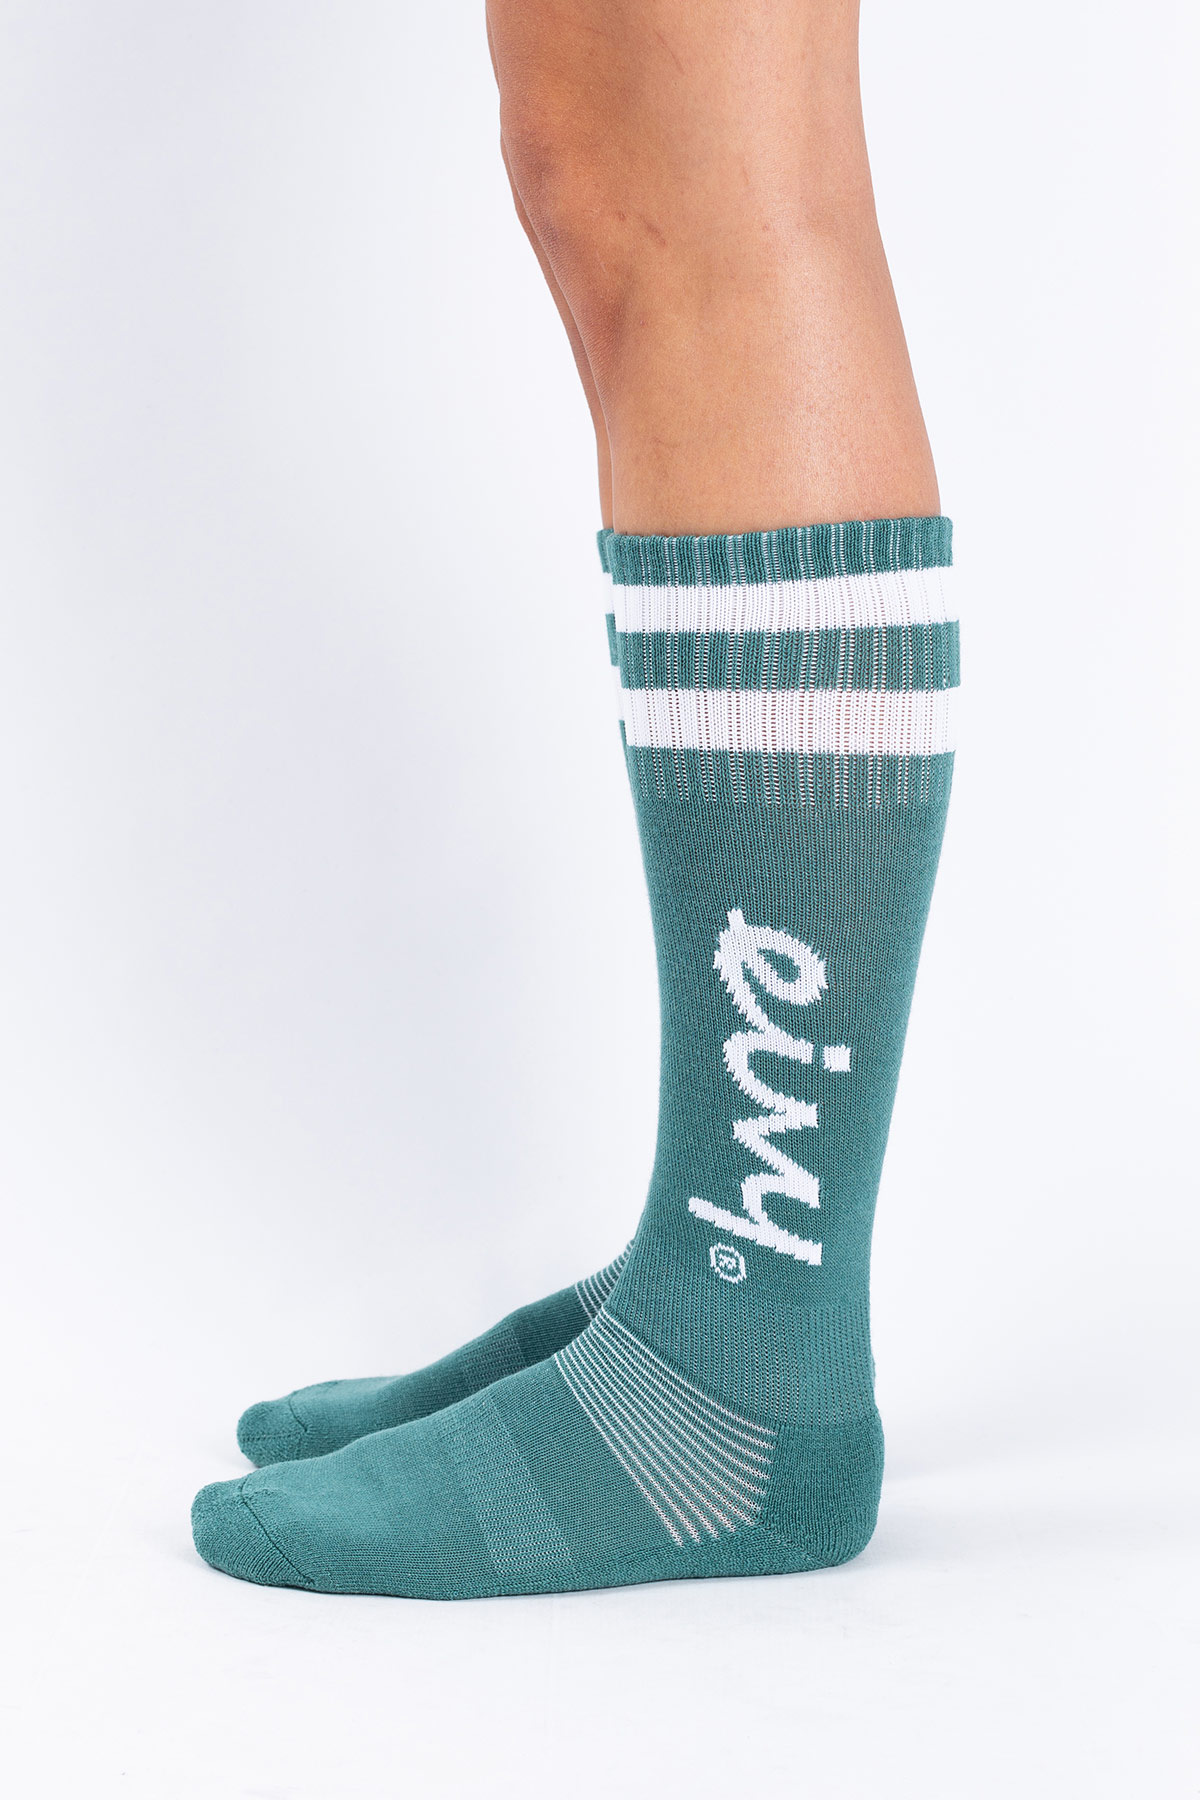 Socks | Cheerleader Wool - Pine